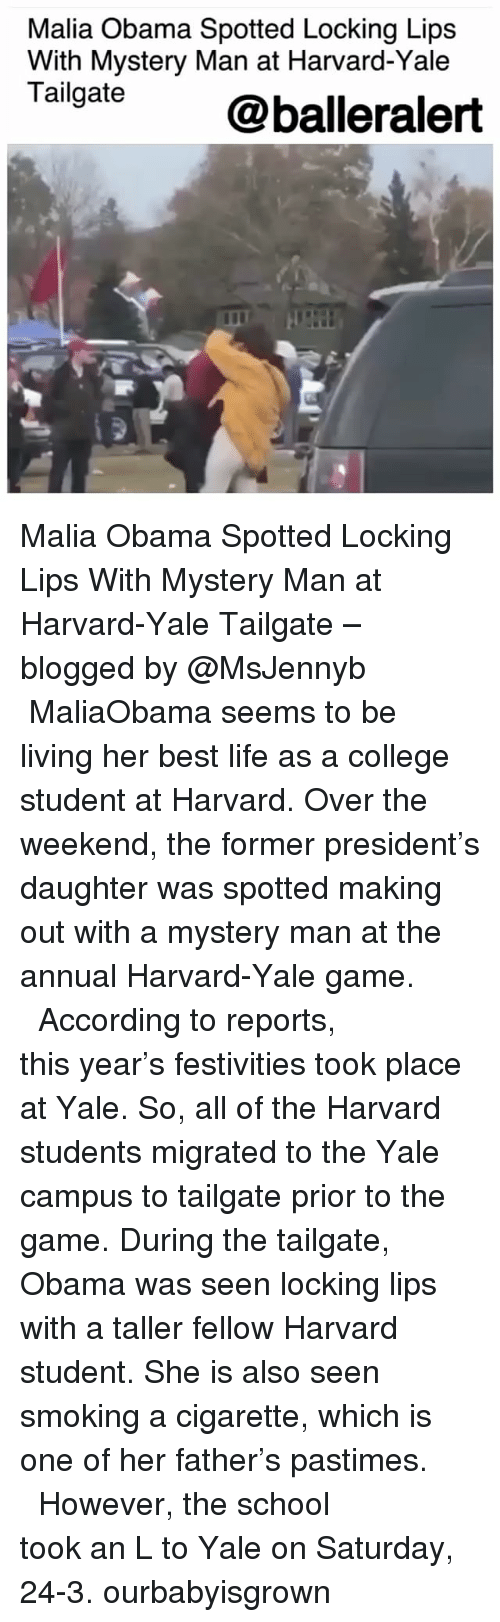 College, Life, and Memes: Malia Obama Spotted Locking Lips  With Mystery Man at Harvard-Yale  Tailgate @balleralert Malia Obama Spotted Locking Lips With Mystery Man at Harvard-Yale Tailgate – blogged by @MsJennyb ⠀⠀⠀⠀⠀⠀⠀ ⠀⠀⠀⠀⠀⠀⠀ MaliaObama seems to be living her best life as a college student at Harvard. Over the weekend, the former president's daughter was spotted making out with a mystery man at the annual Harvard-Yale game. ⠀⠀⠀⠀⠀⠀⠀ ⠀⠀⠀⠀⠀⠀⠀ According to reports, this year's festivities took place at Yale. So, all of the Harvard students migrated to the Yale campus to tailgate prior to the game. During the tailgate, Obama was seen locking lips with a taller fellow Harvard student. She is also seen smoking a cigarette, which is one of her father's pastimes. ⠀⠀⠀⠀⠀⠀⠀ ⠀⠀⠀⠀⠀⠀⠀ However, the school took an L to Yale on Saturday, 24-3. ourbabyisgrown